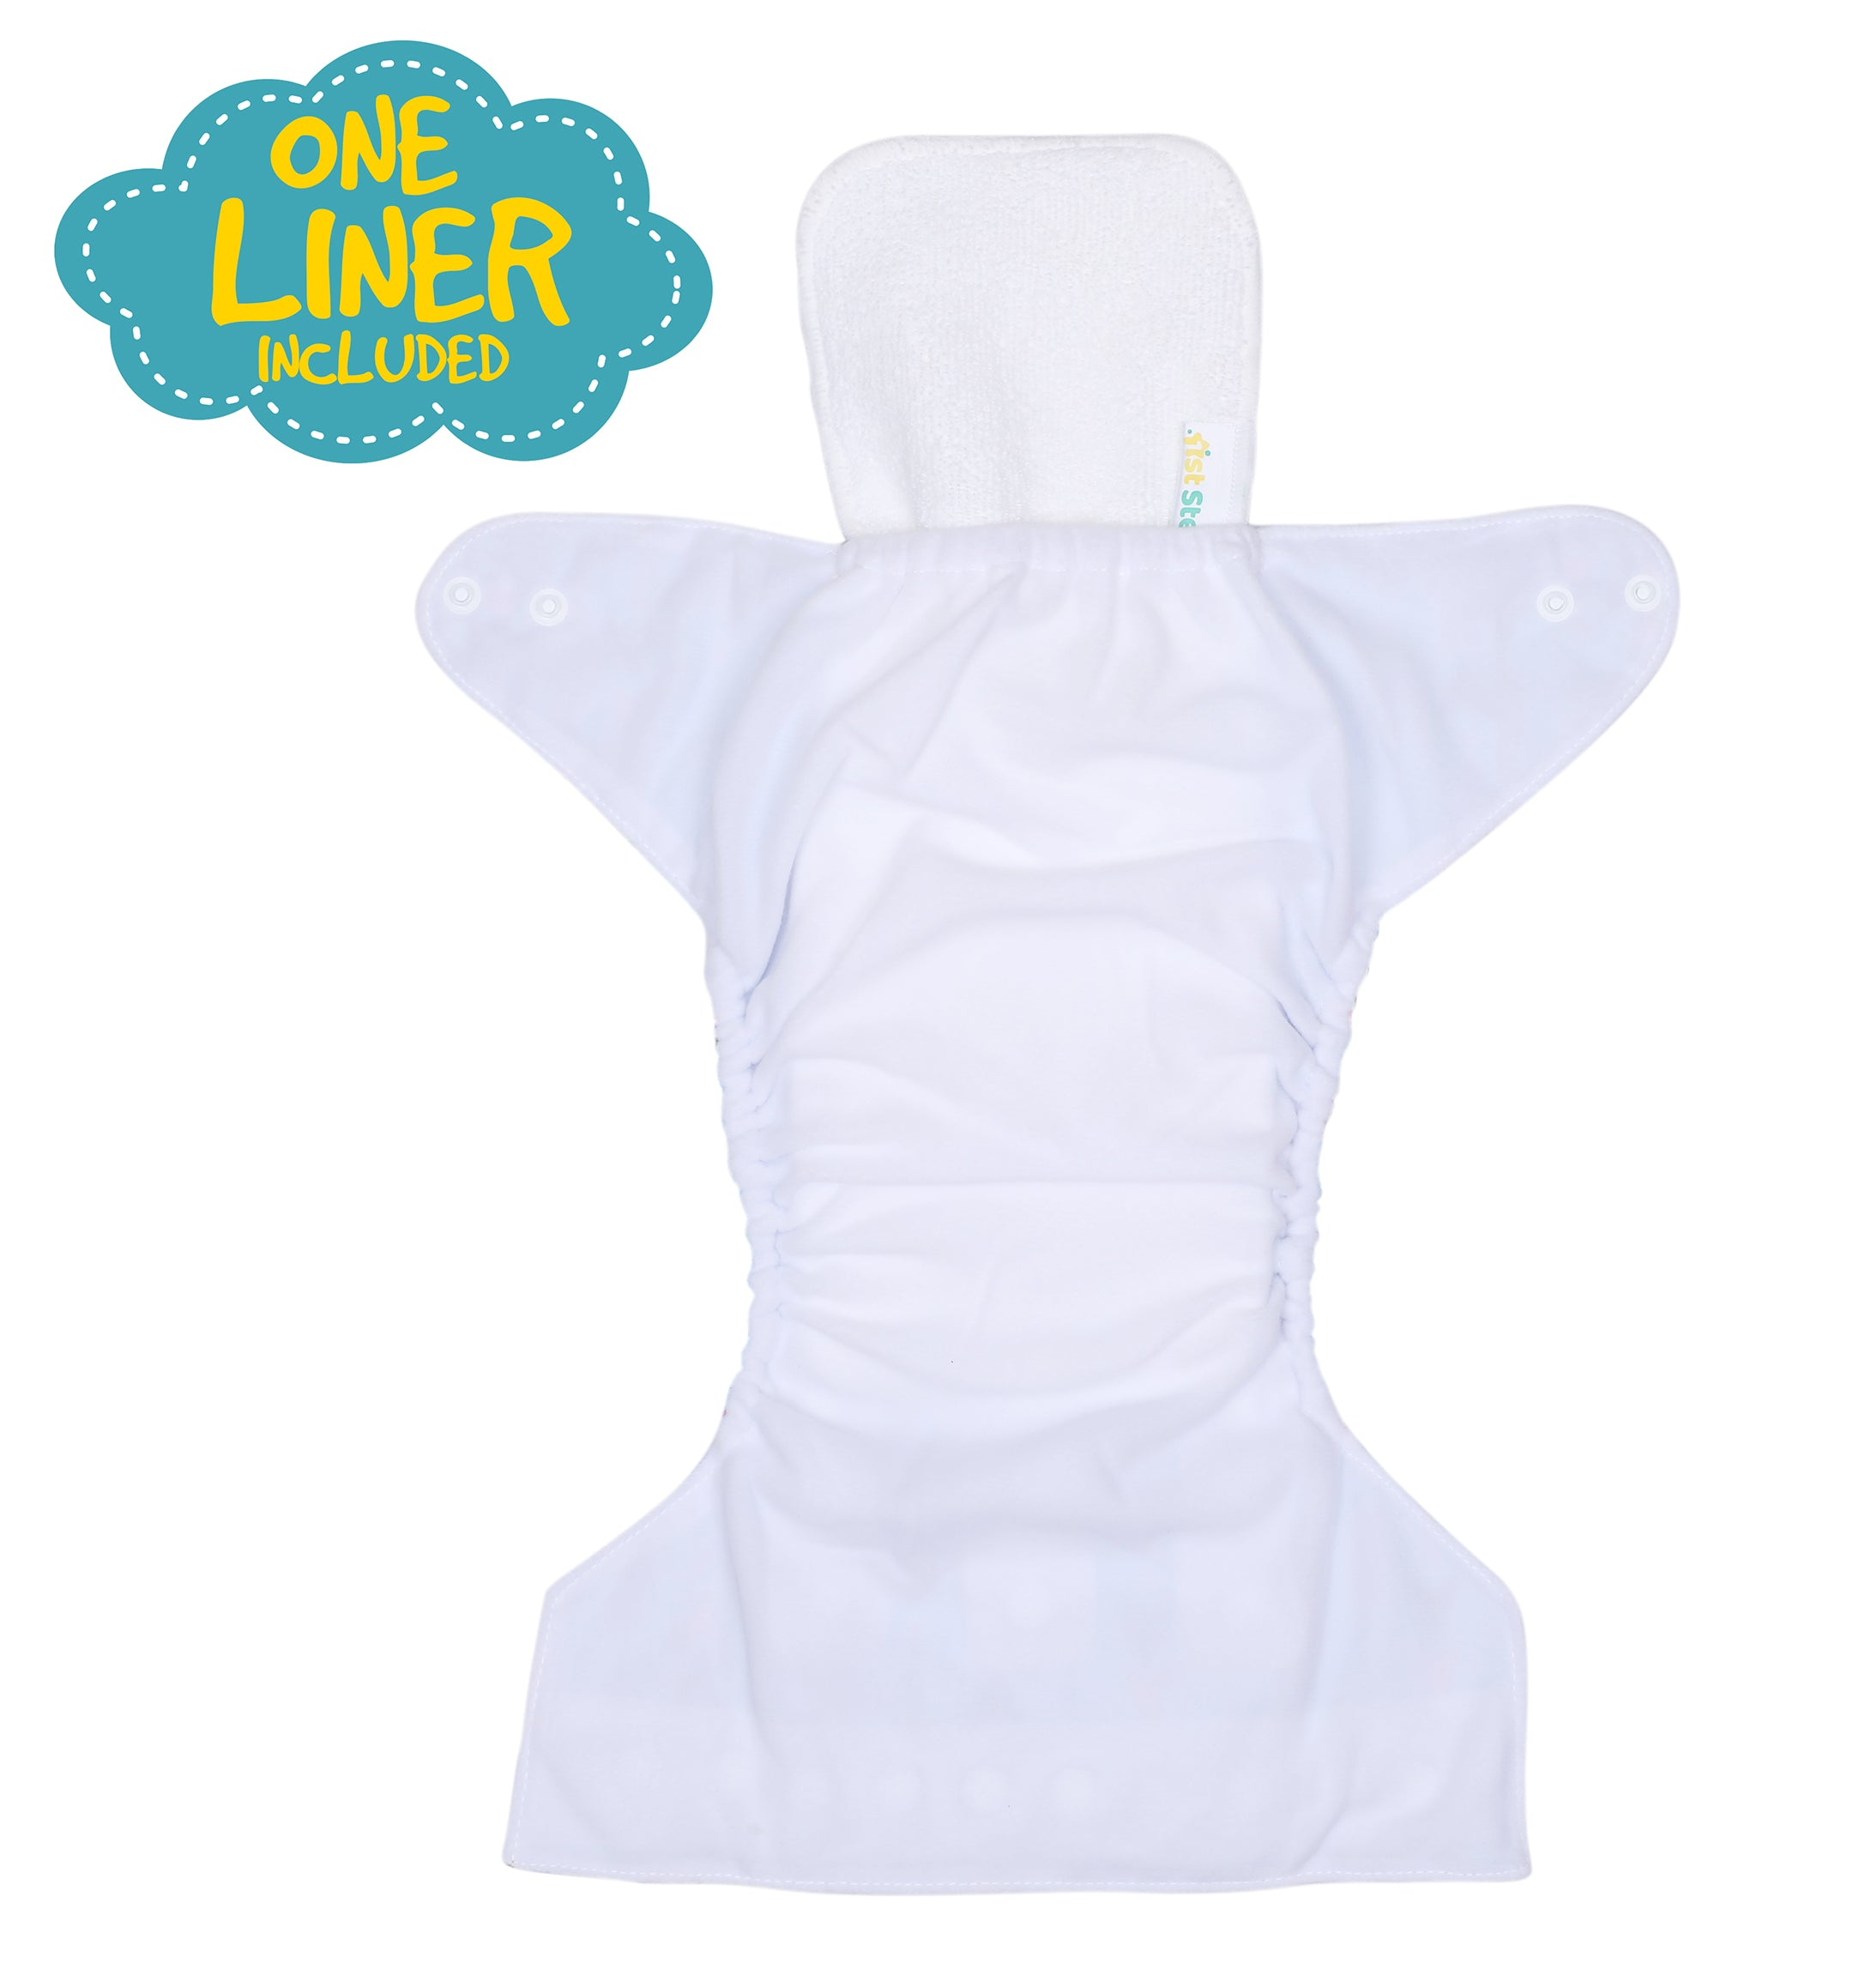 1st Step Size Free-size Adjustable, Washable and Reusable Diaper with Diaper Liner (Flamingo)